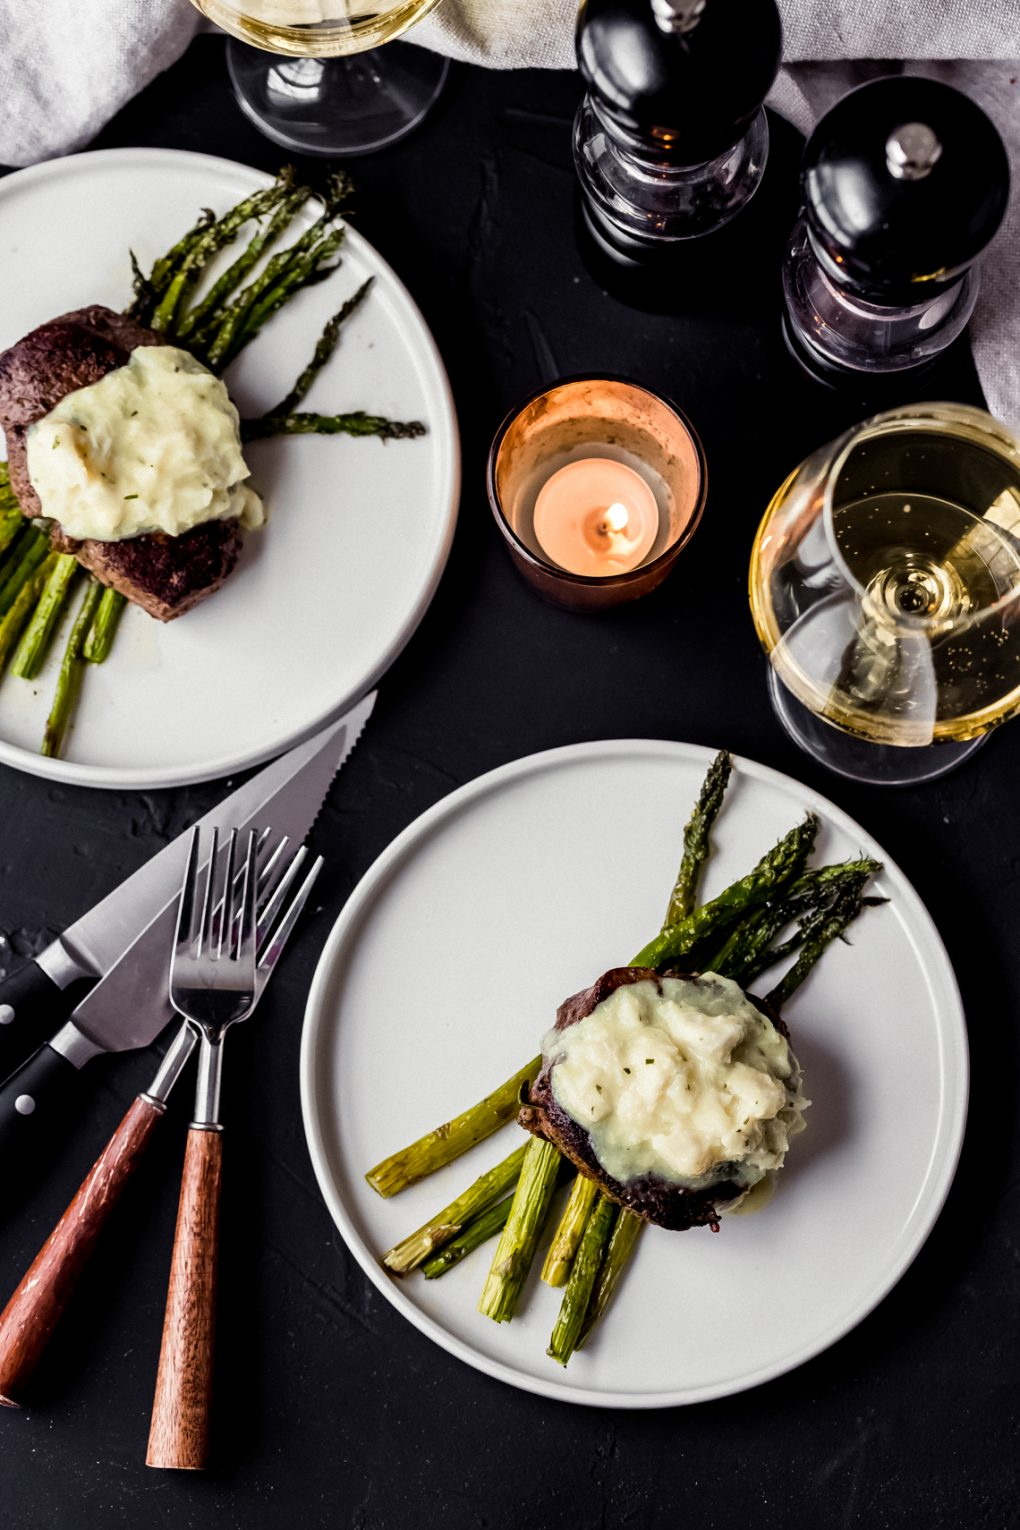 two bison filet mignons on white plates